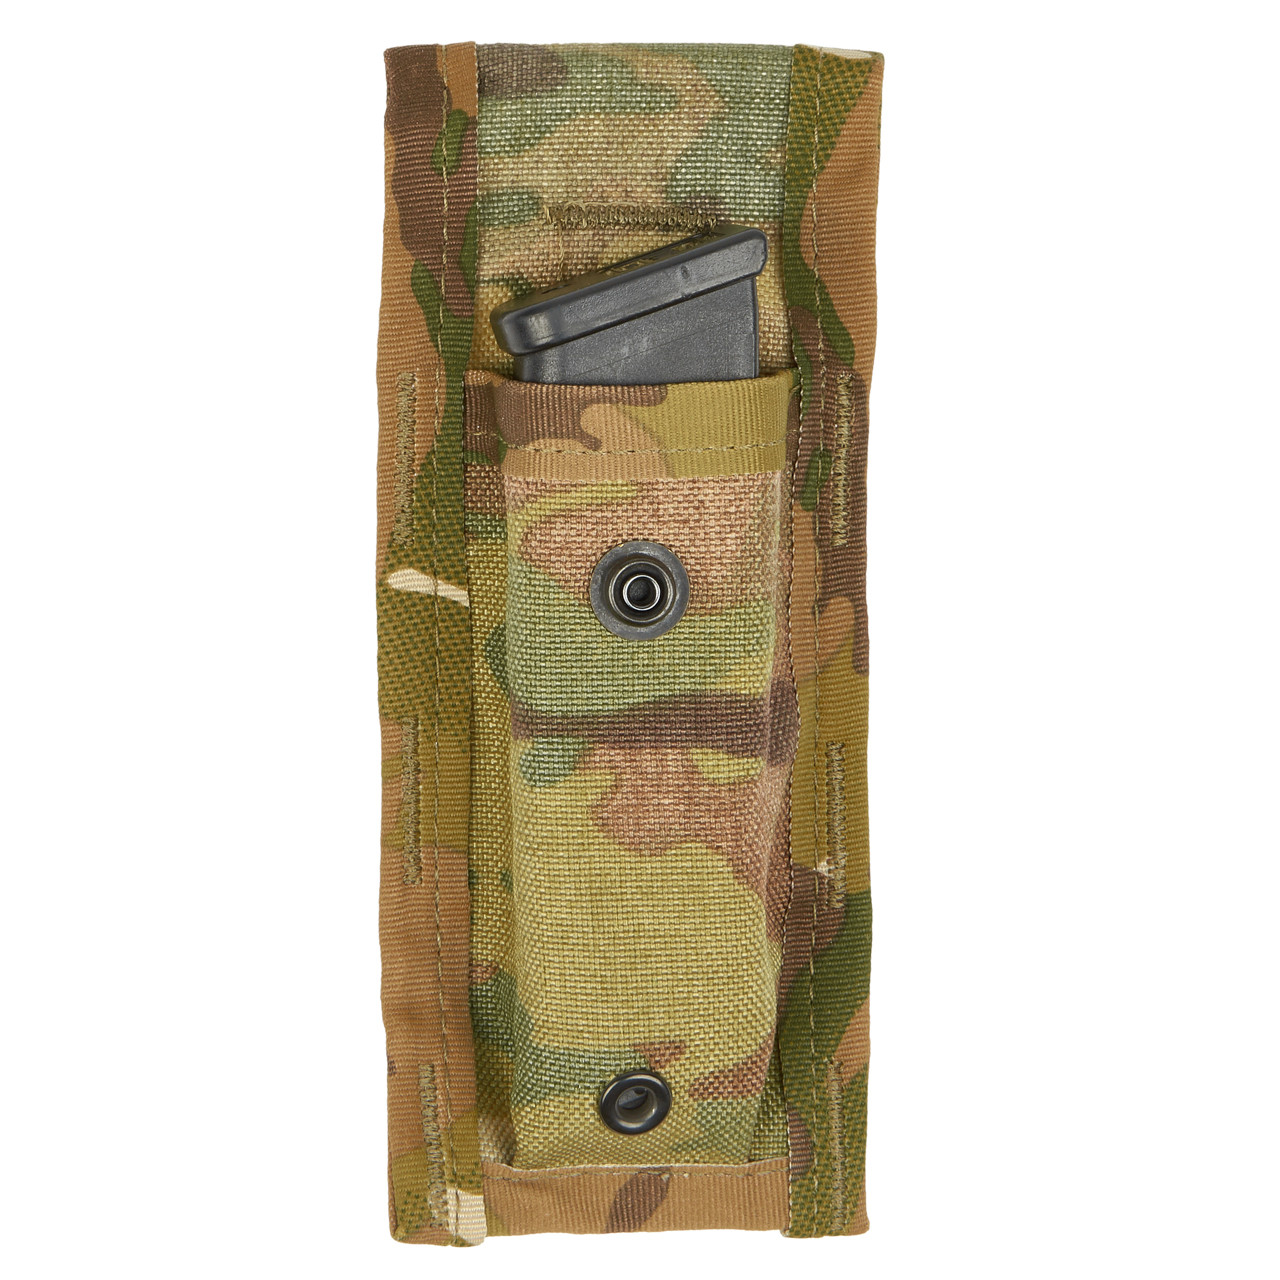 51263 M9 1 MAG POUCH